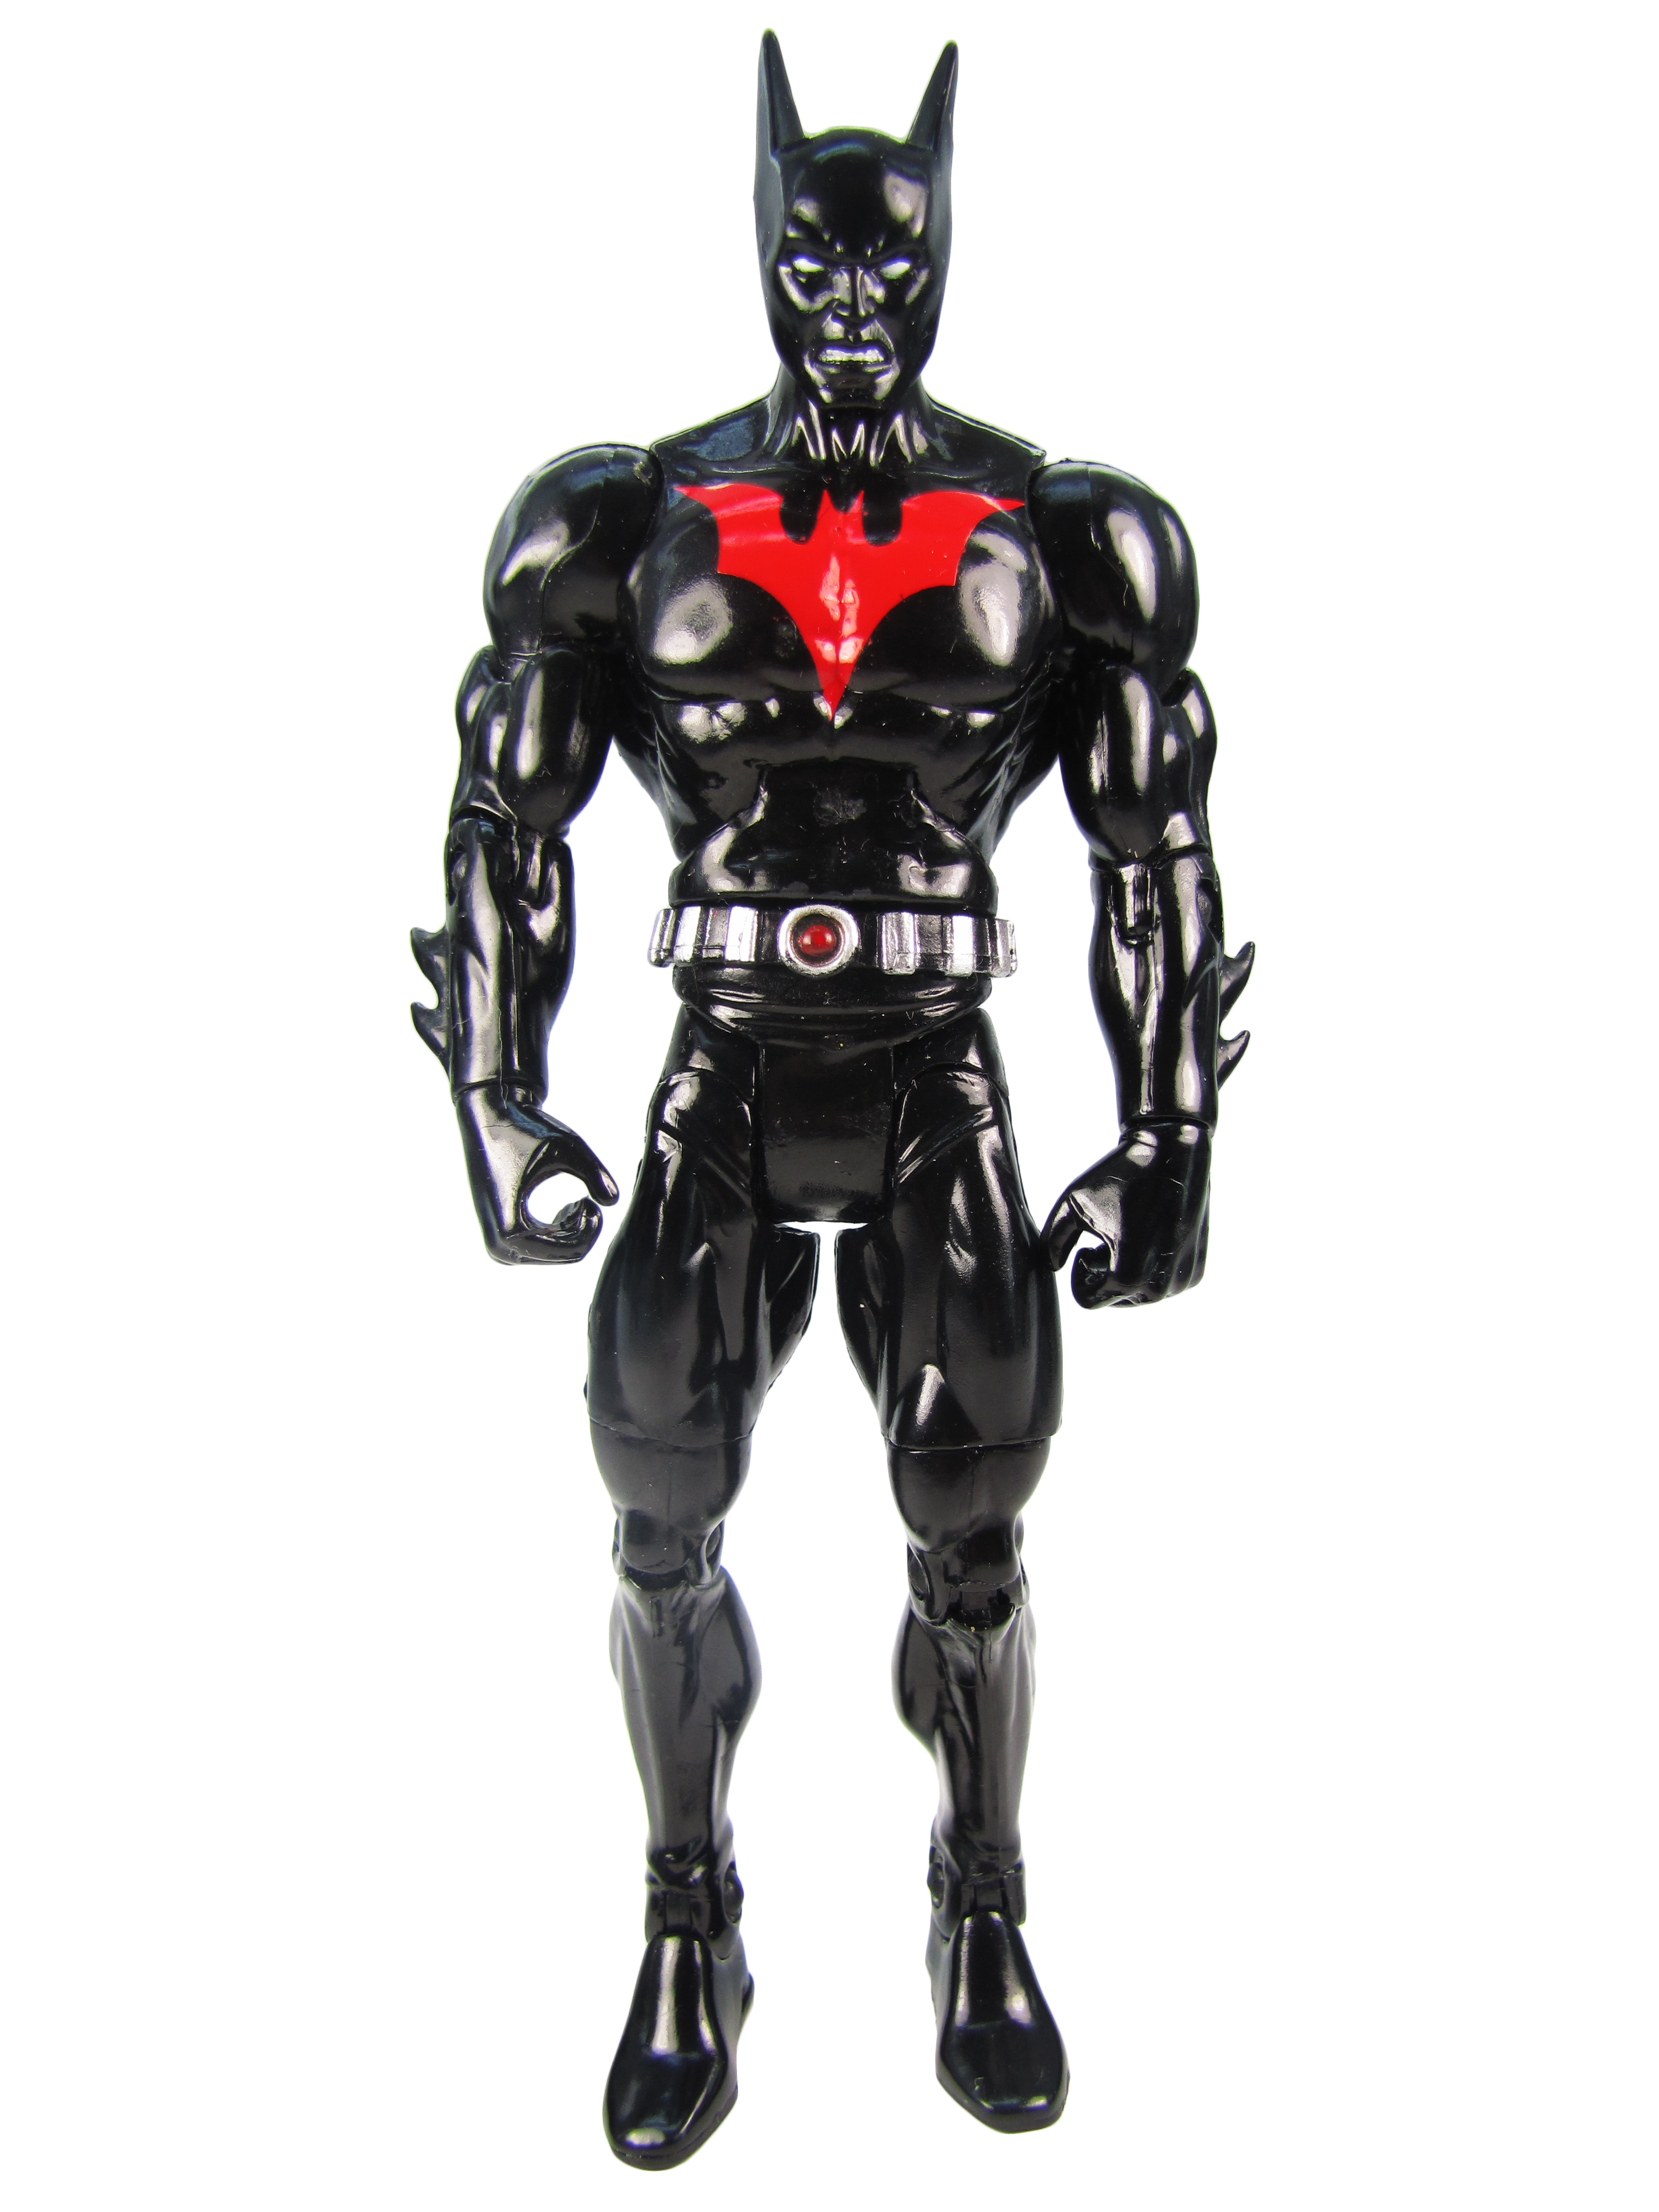 2008 DC Universe Classics BATMAN BEYOND Wave 4 DESPERO Series Mint